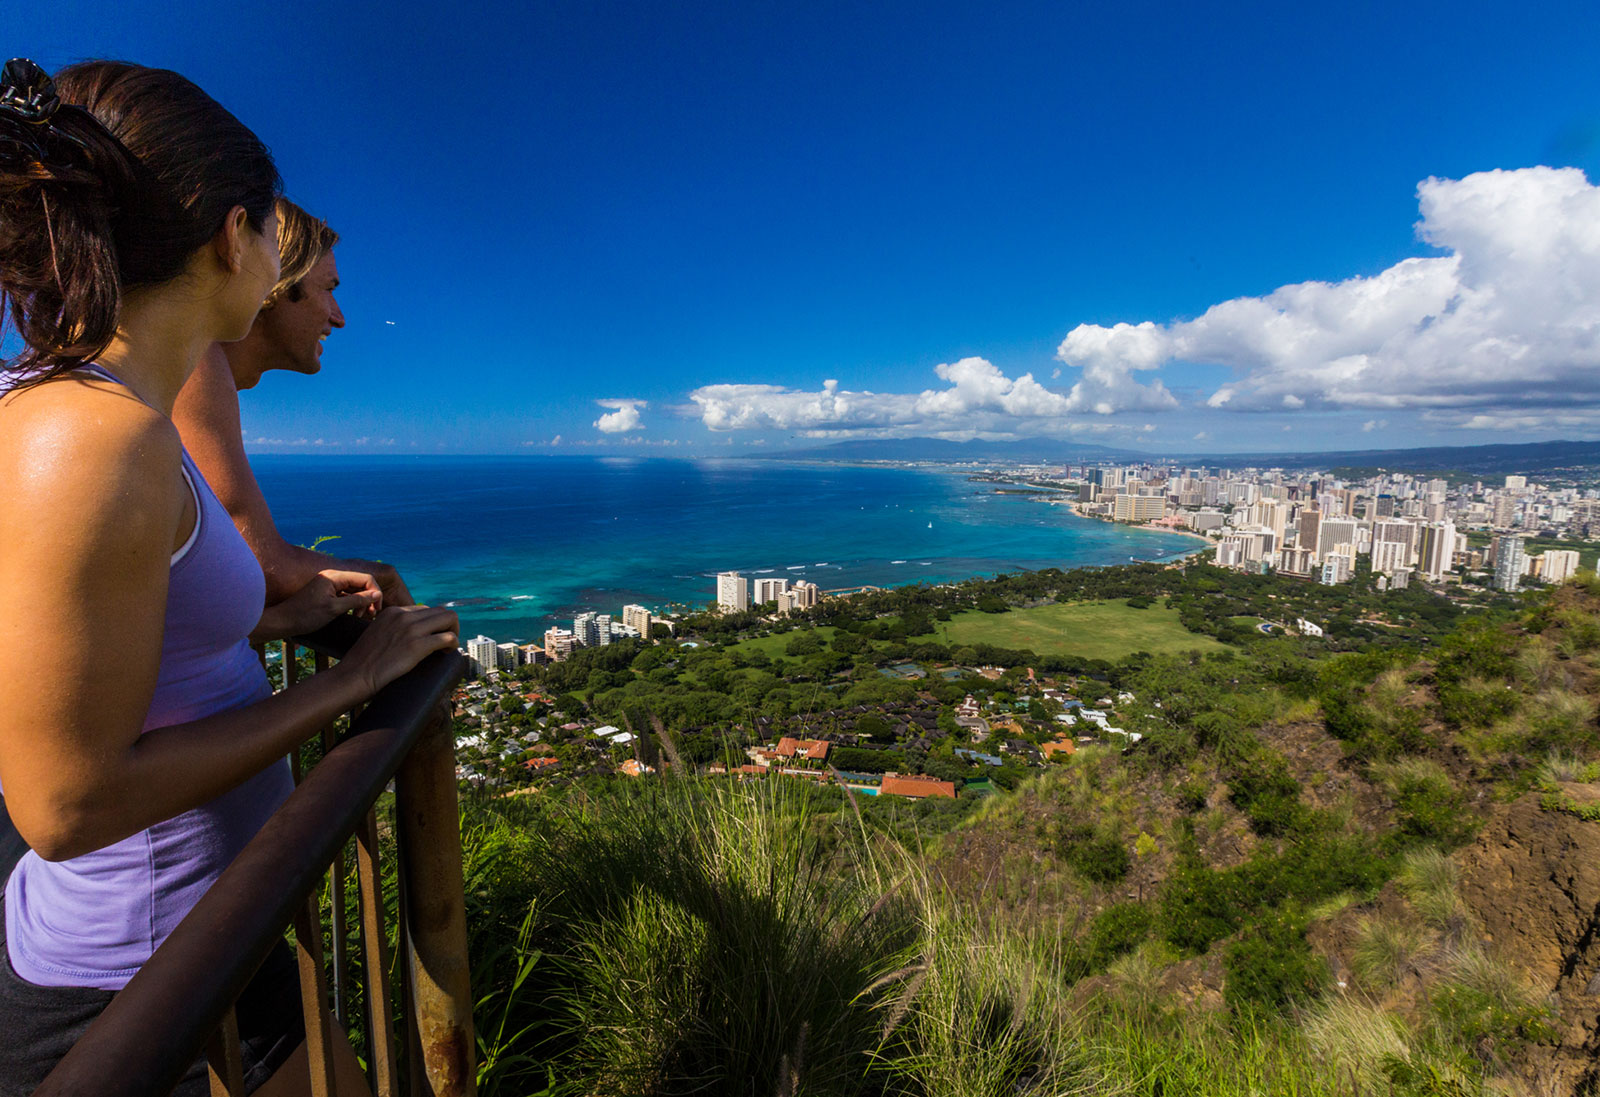 View of Waikiki  and Honolulu from Diamond Head